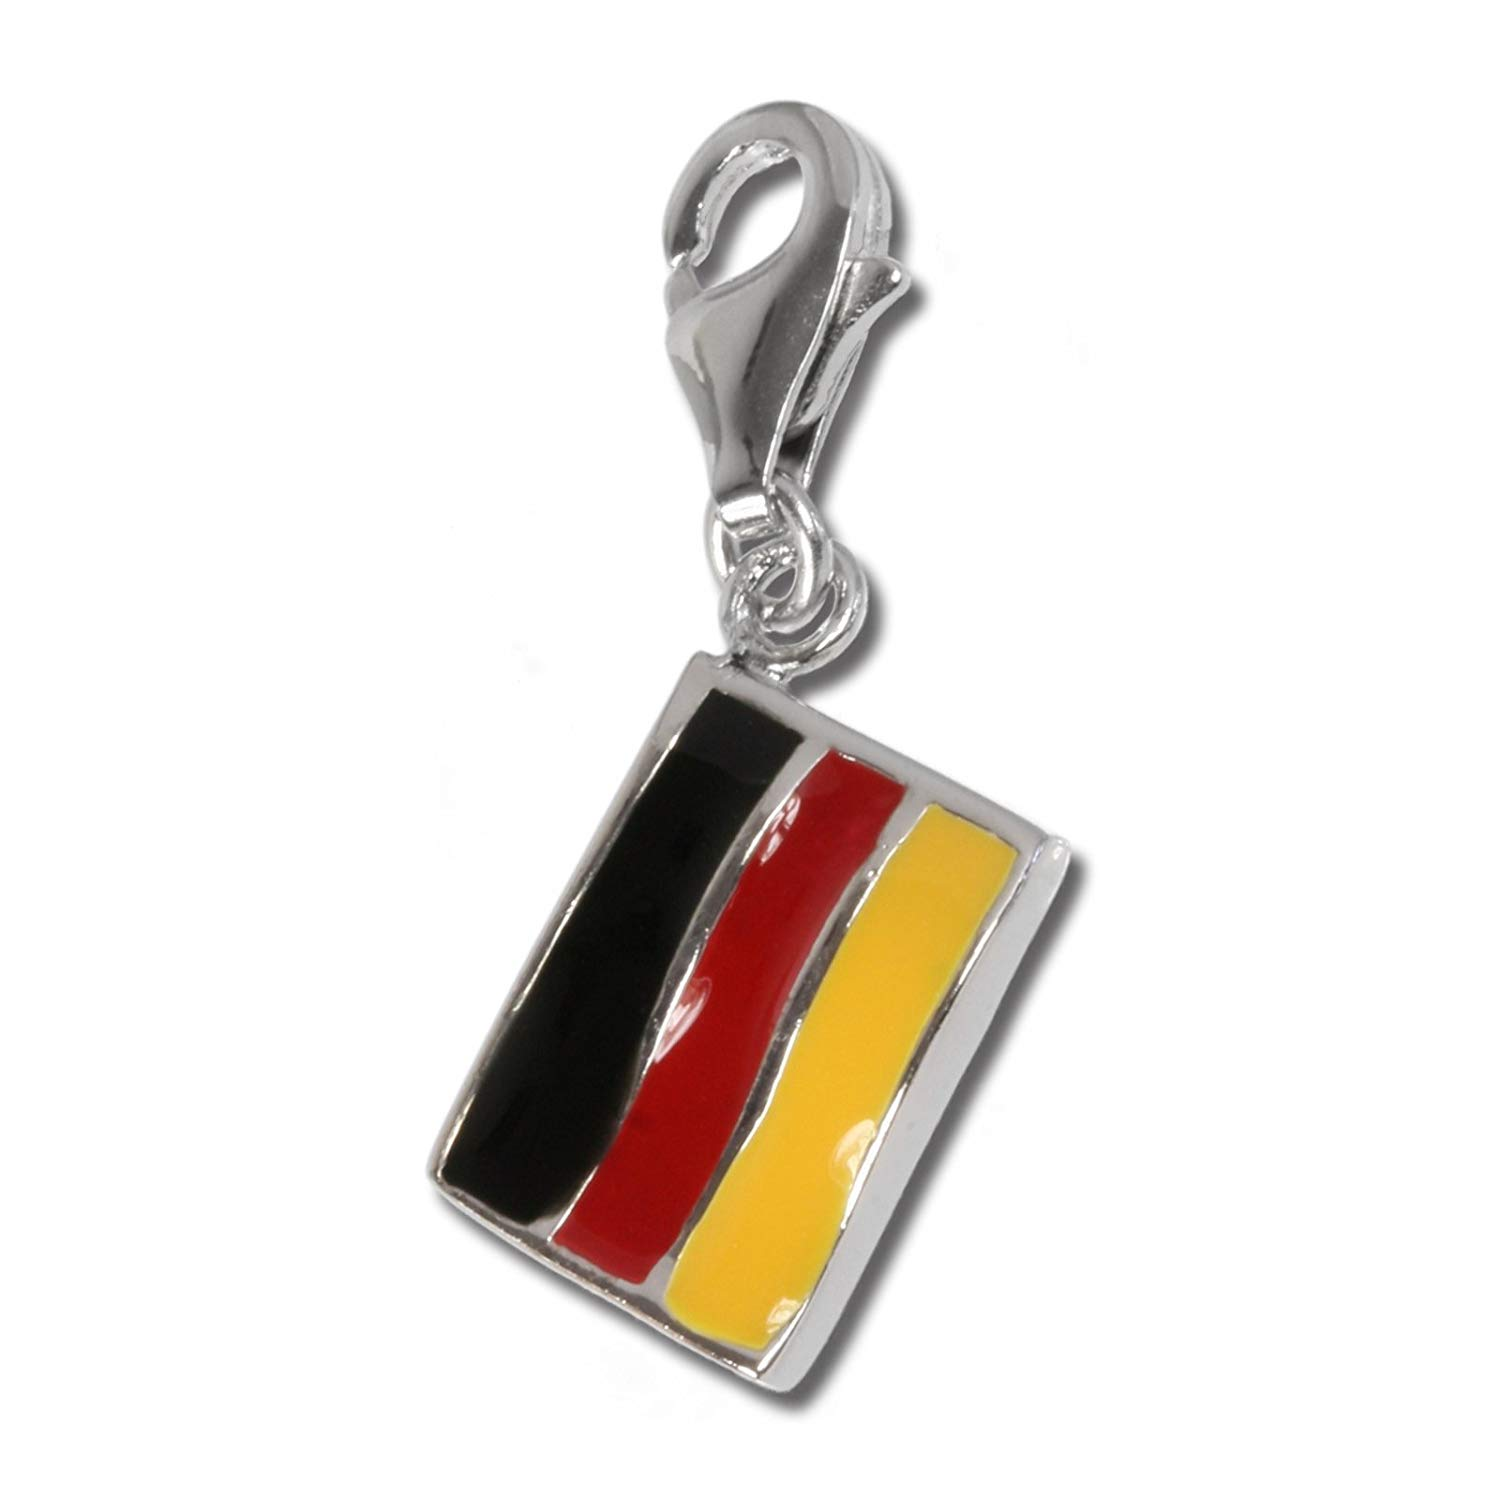 Cheap Earring Clasp Types Find Earring Clasp Types Deals On Line At